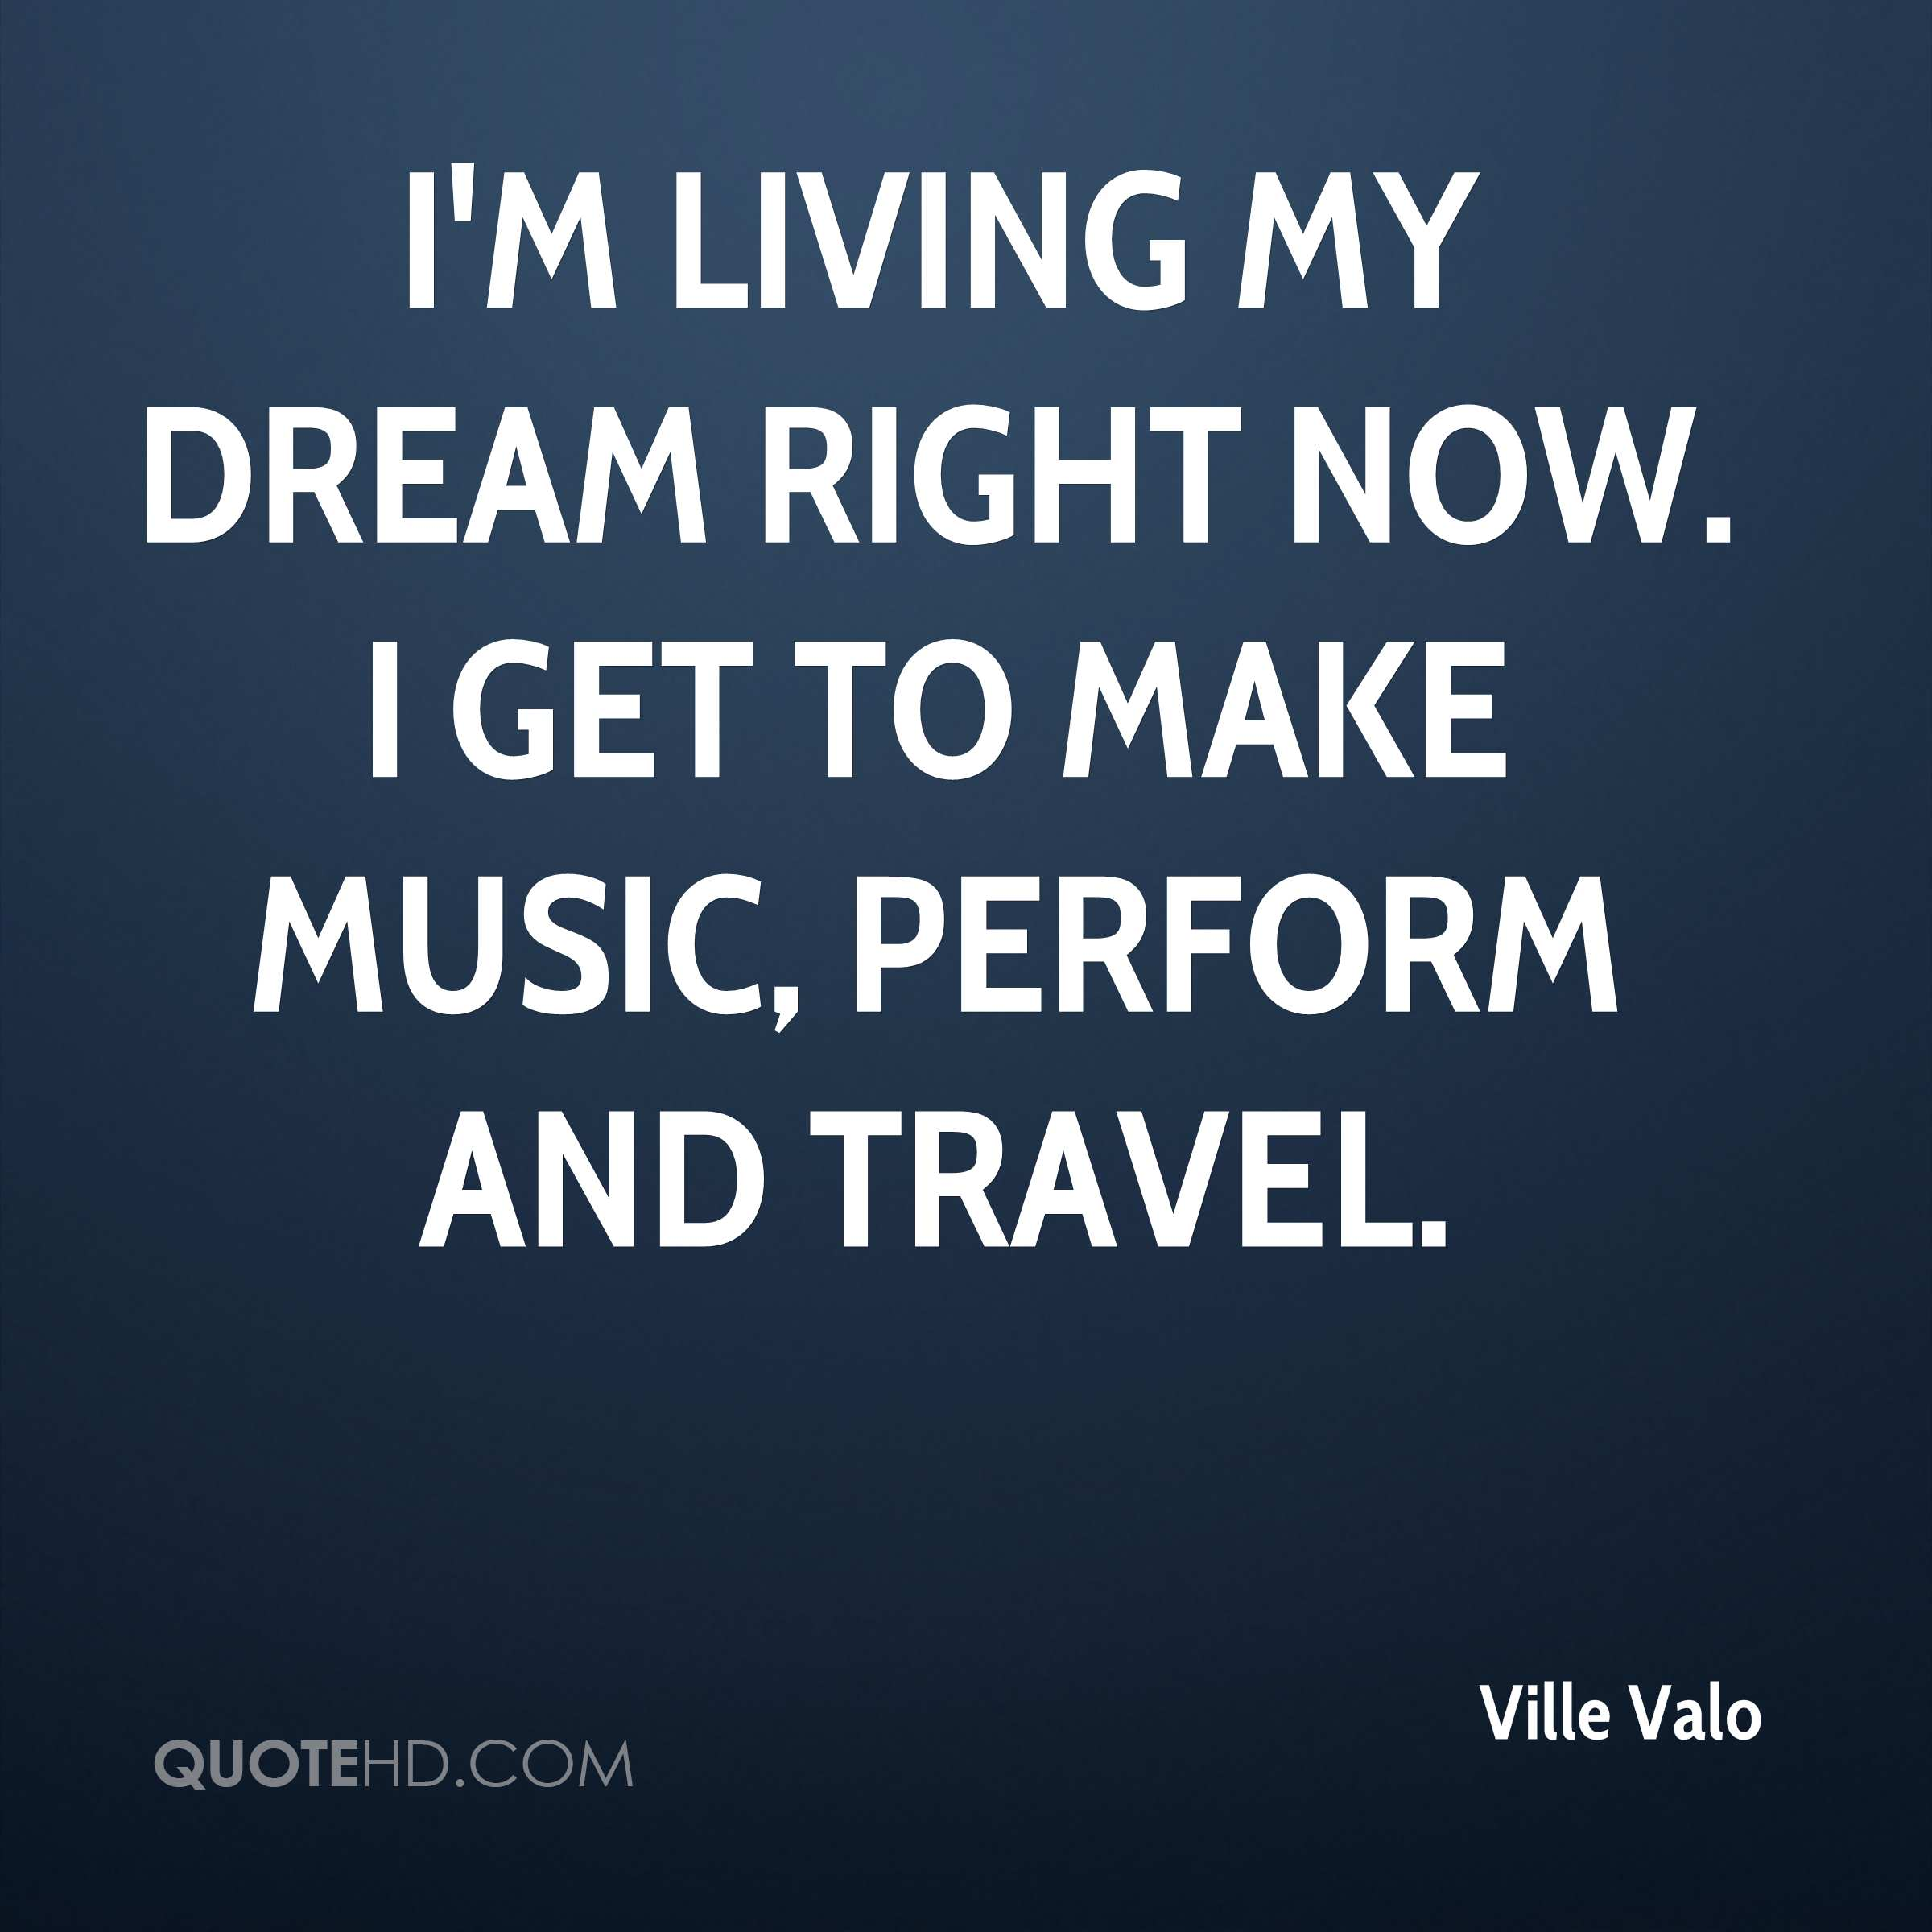 Dream Quotes Ville Valo Travel Quotes  Quotehd